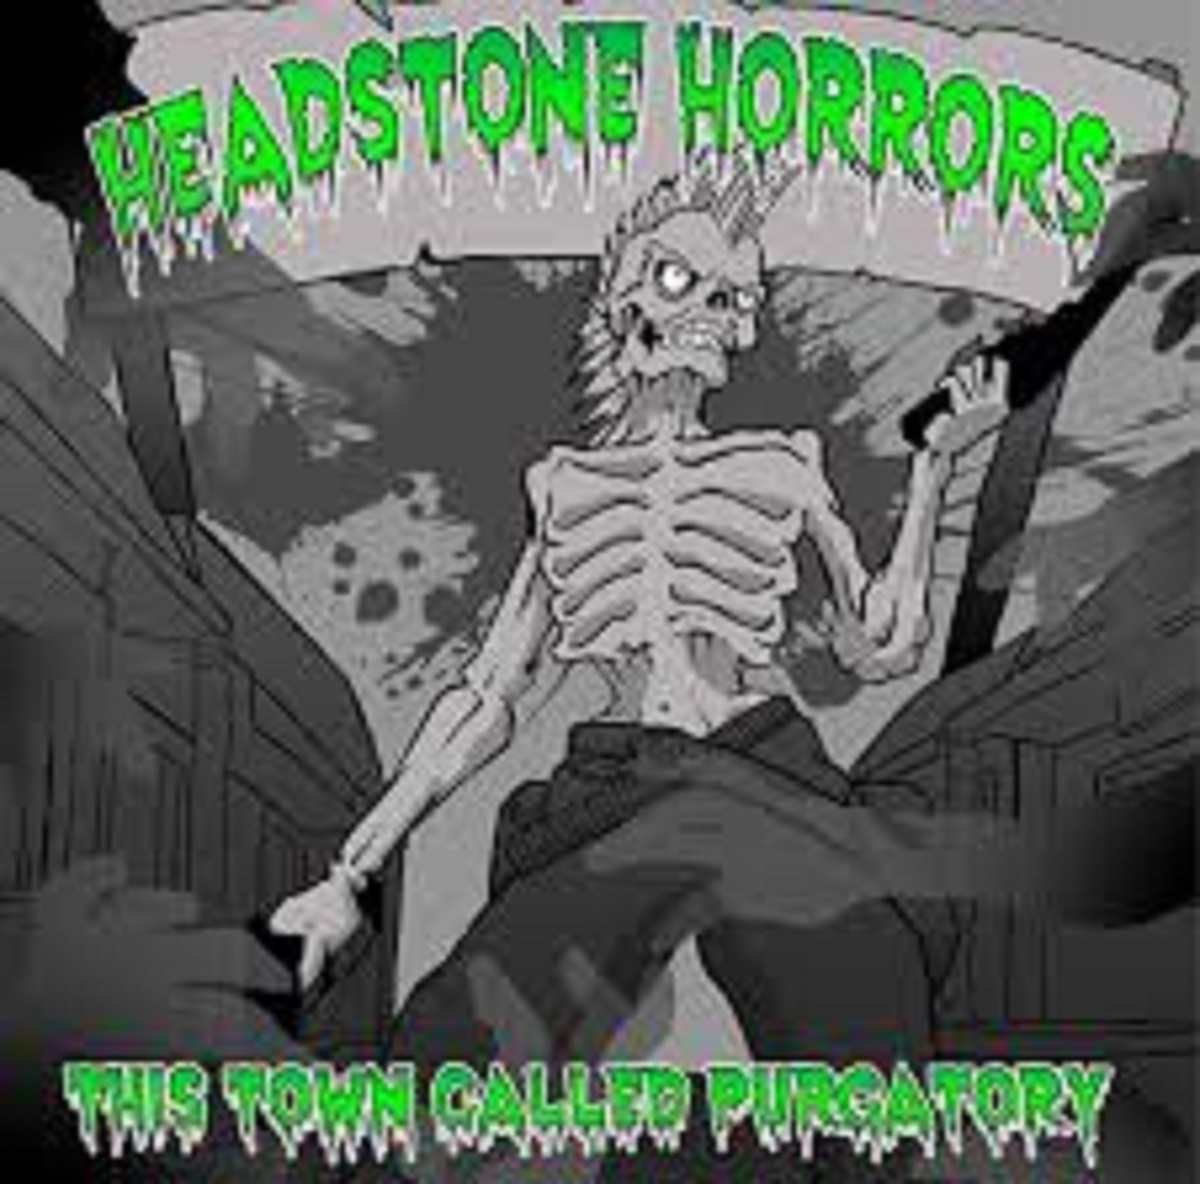 Review: Headstone Horrors – This Town Called Purgatory